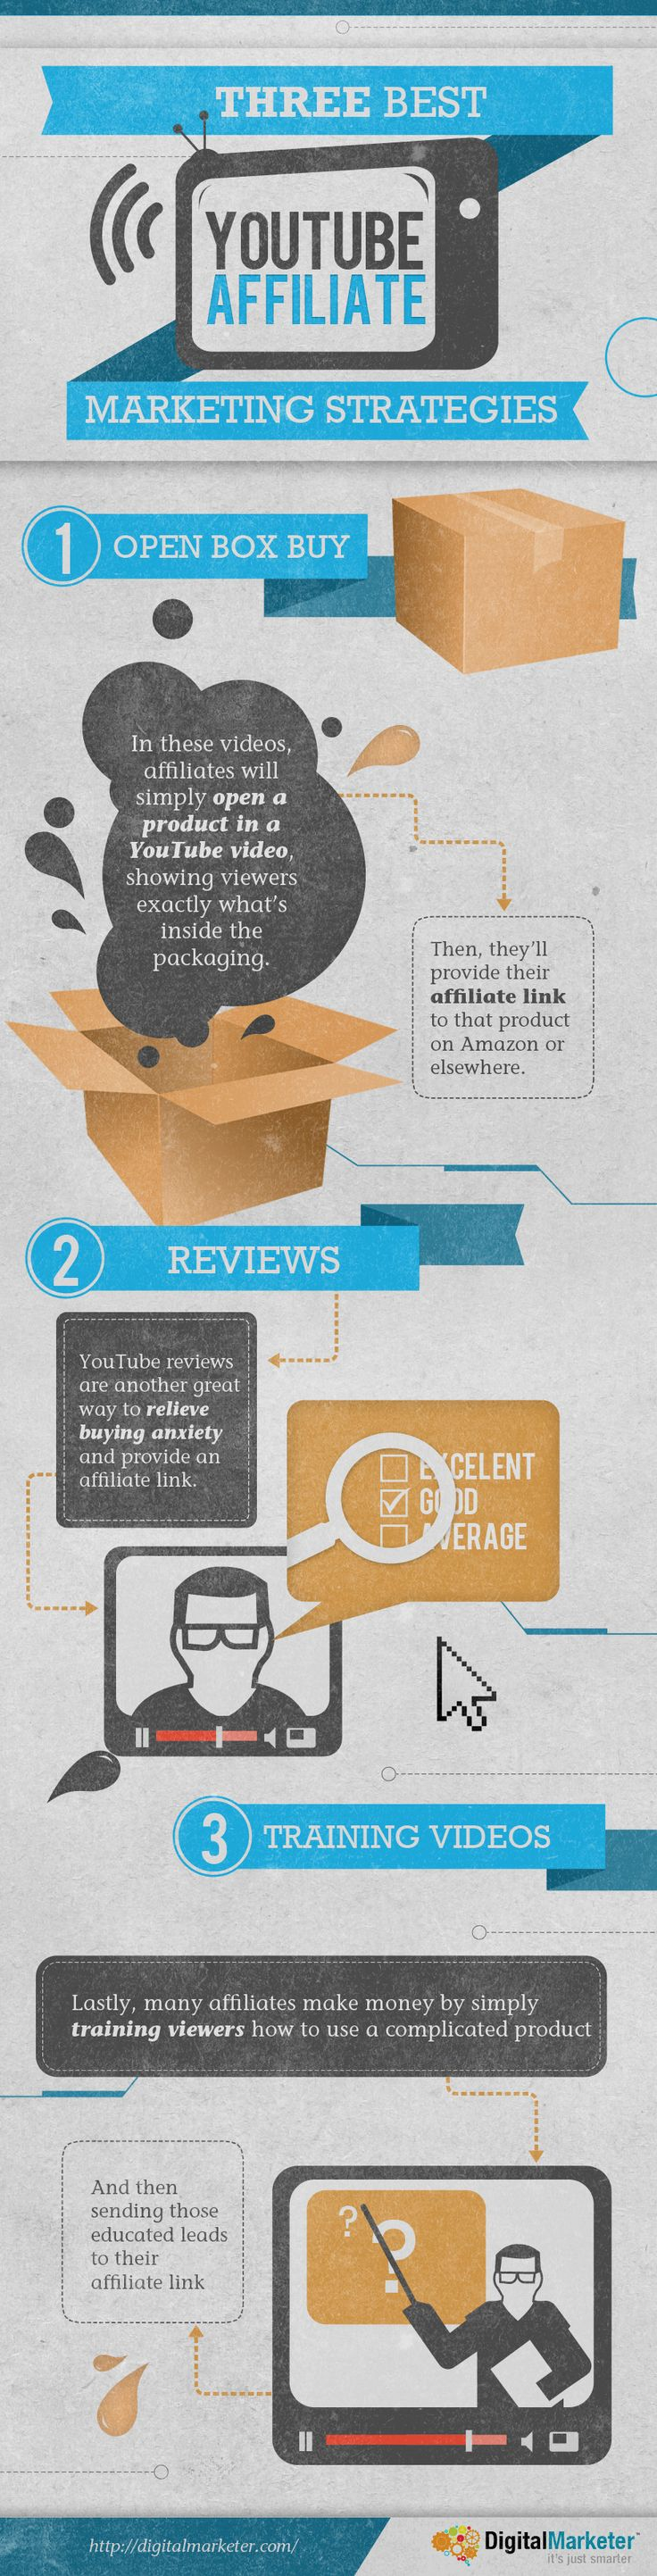 Three Best YouTube Affiliate Marketing Strategies #digitalmarketer #infografia